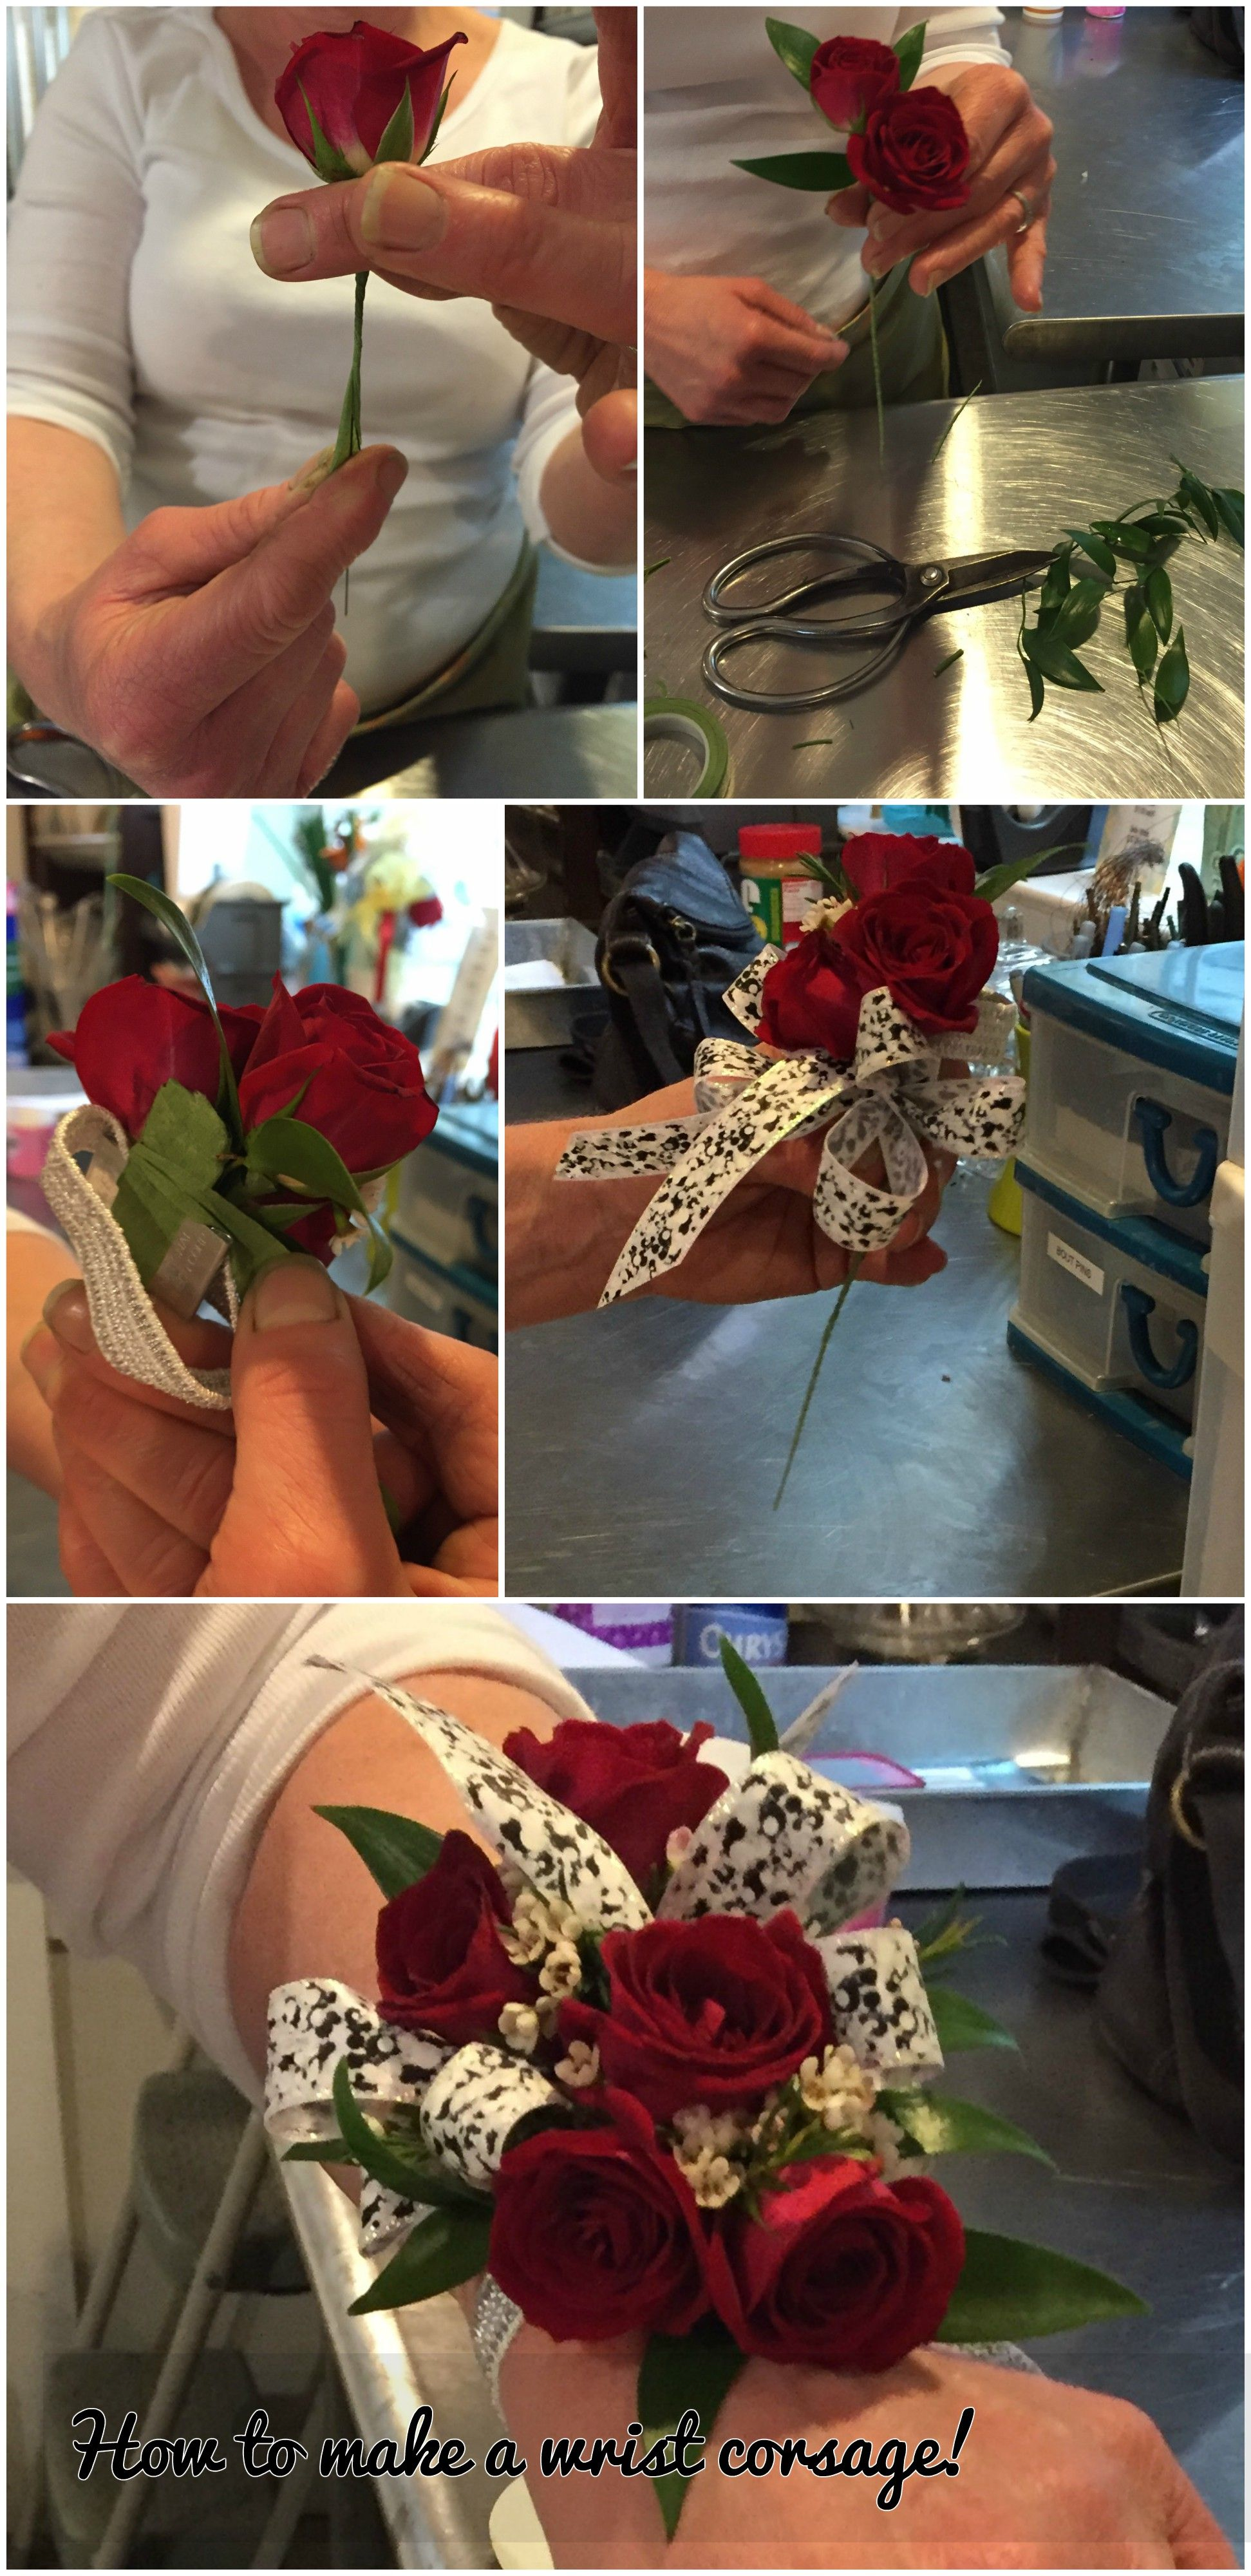 How To Make Your Own Prom Wrist Corsage Step By Step Instructions